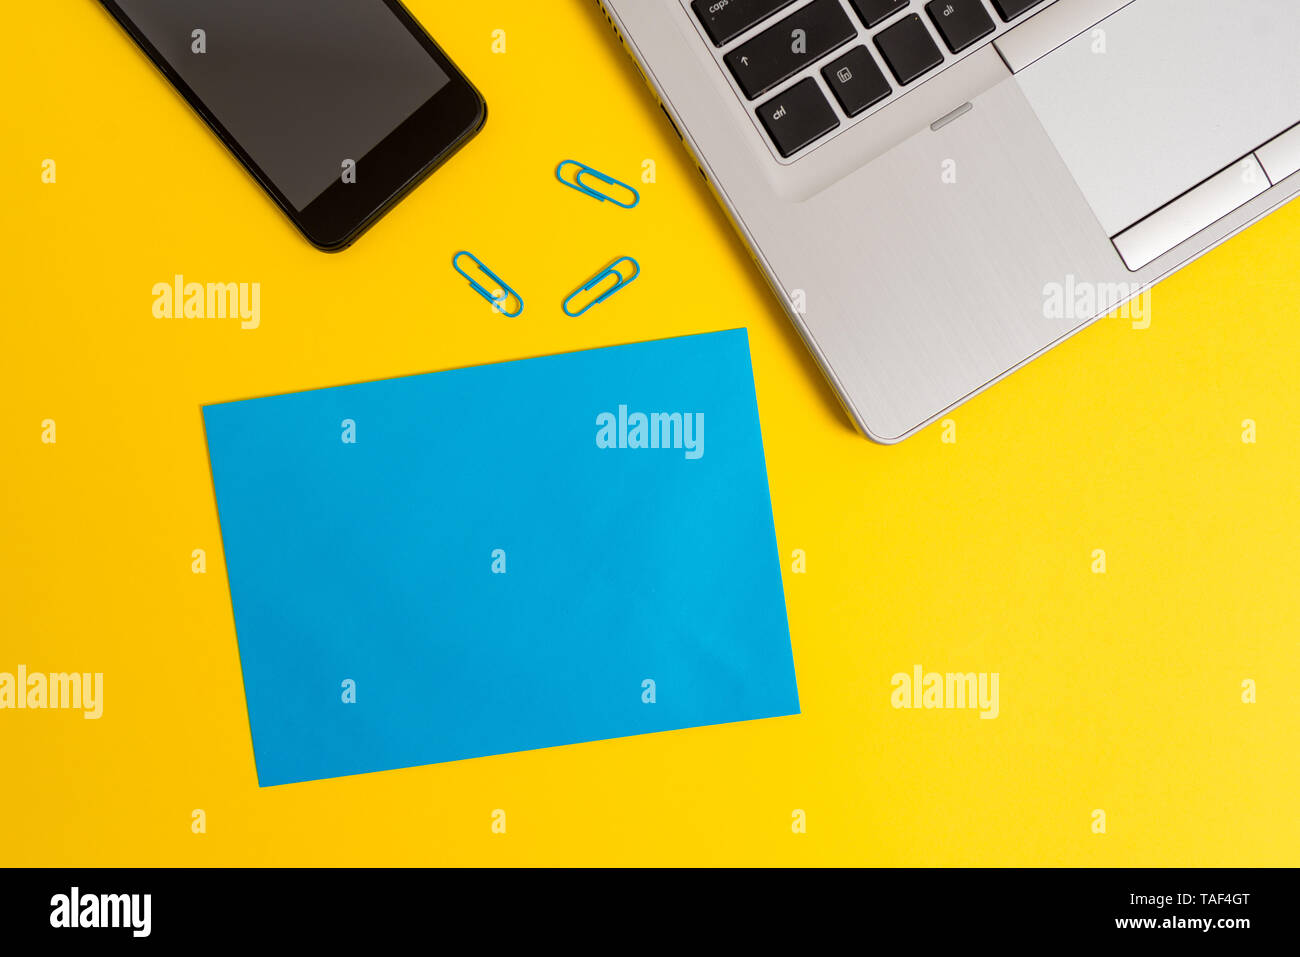 Trendy open laptop smartphone small paper sheet clips colored background - Stock Image